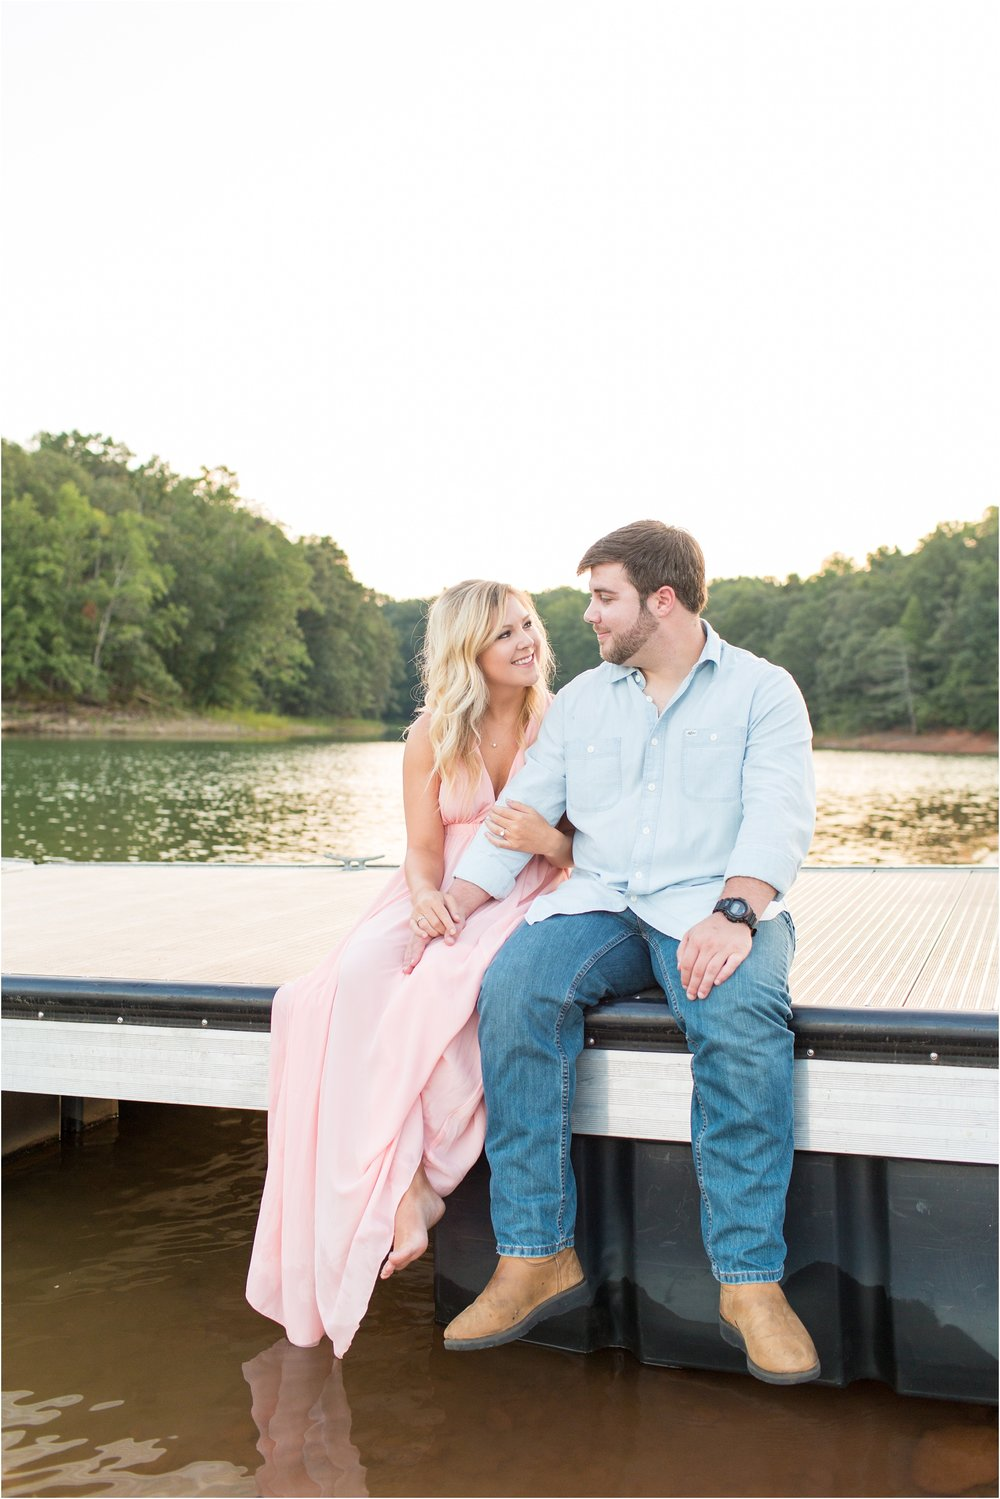 Lauren & Matthew Engagements 2-56.jpg